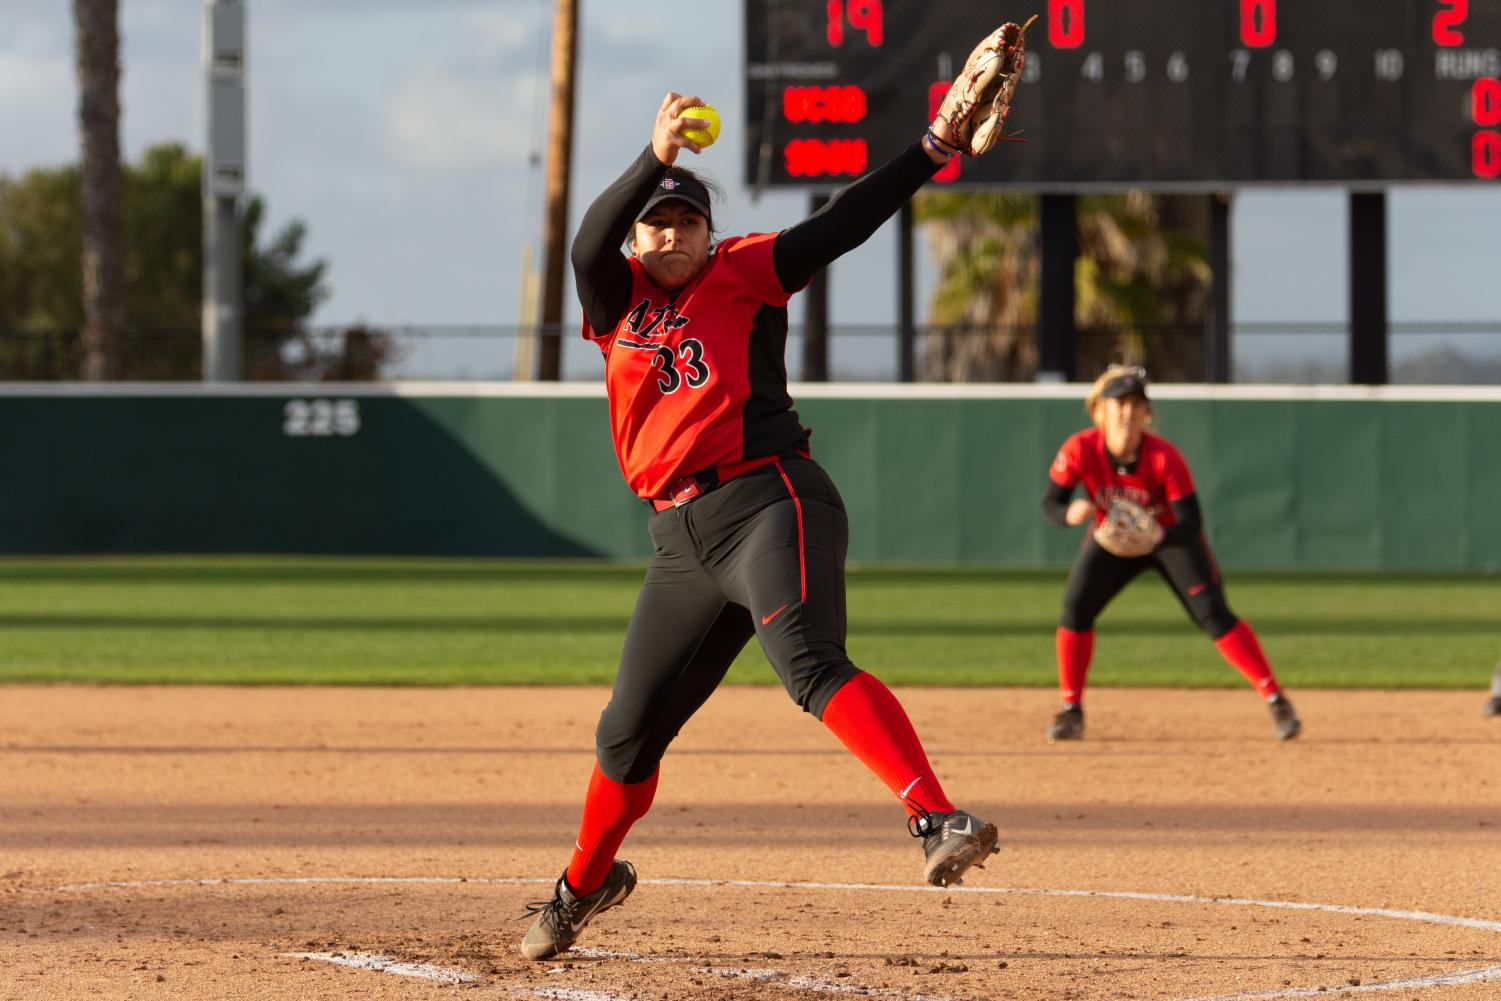 Junior pitcher Marissa Moreno pitches during the Aztecs 1-0 win over UC Santa Barbara on Feb. 16 at SDSU Softball Stadium.